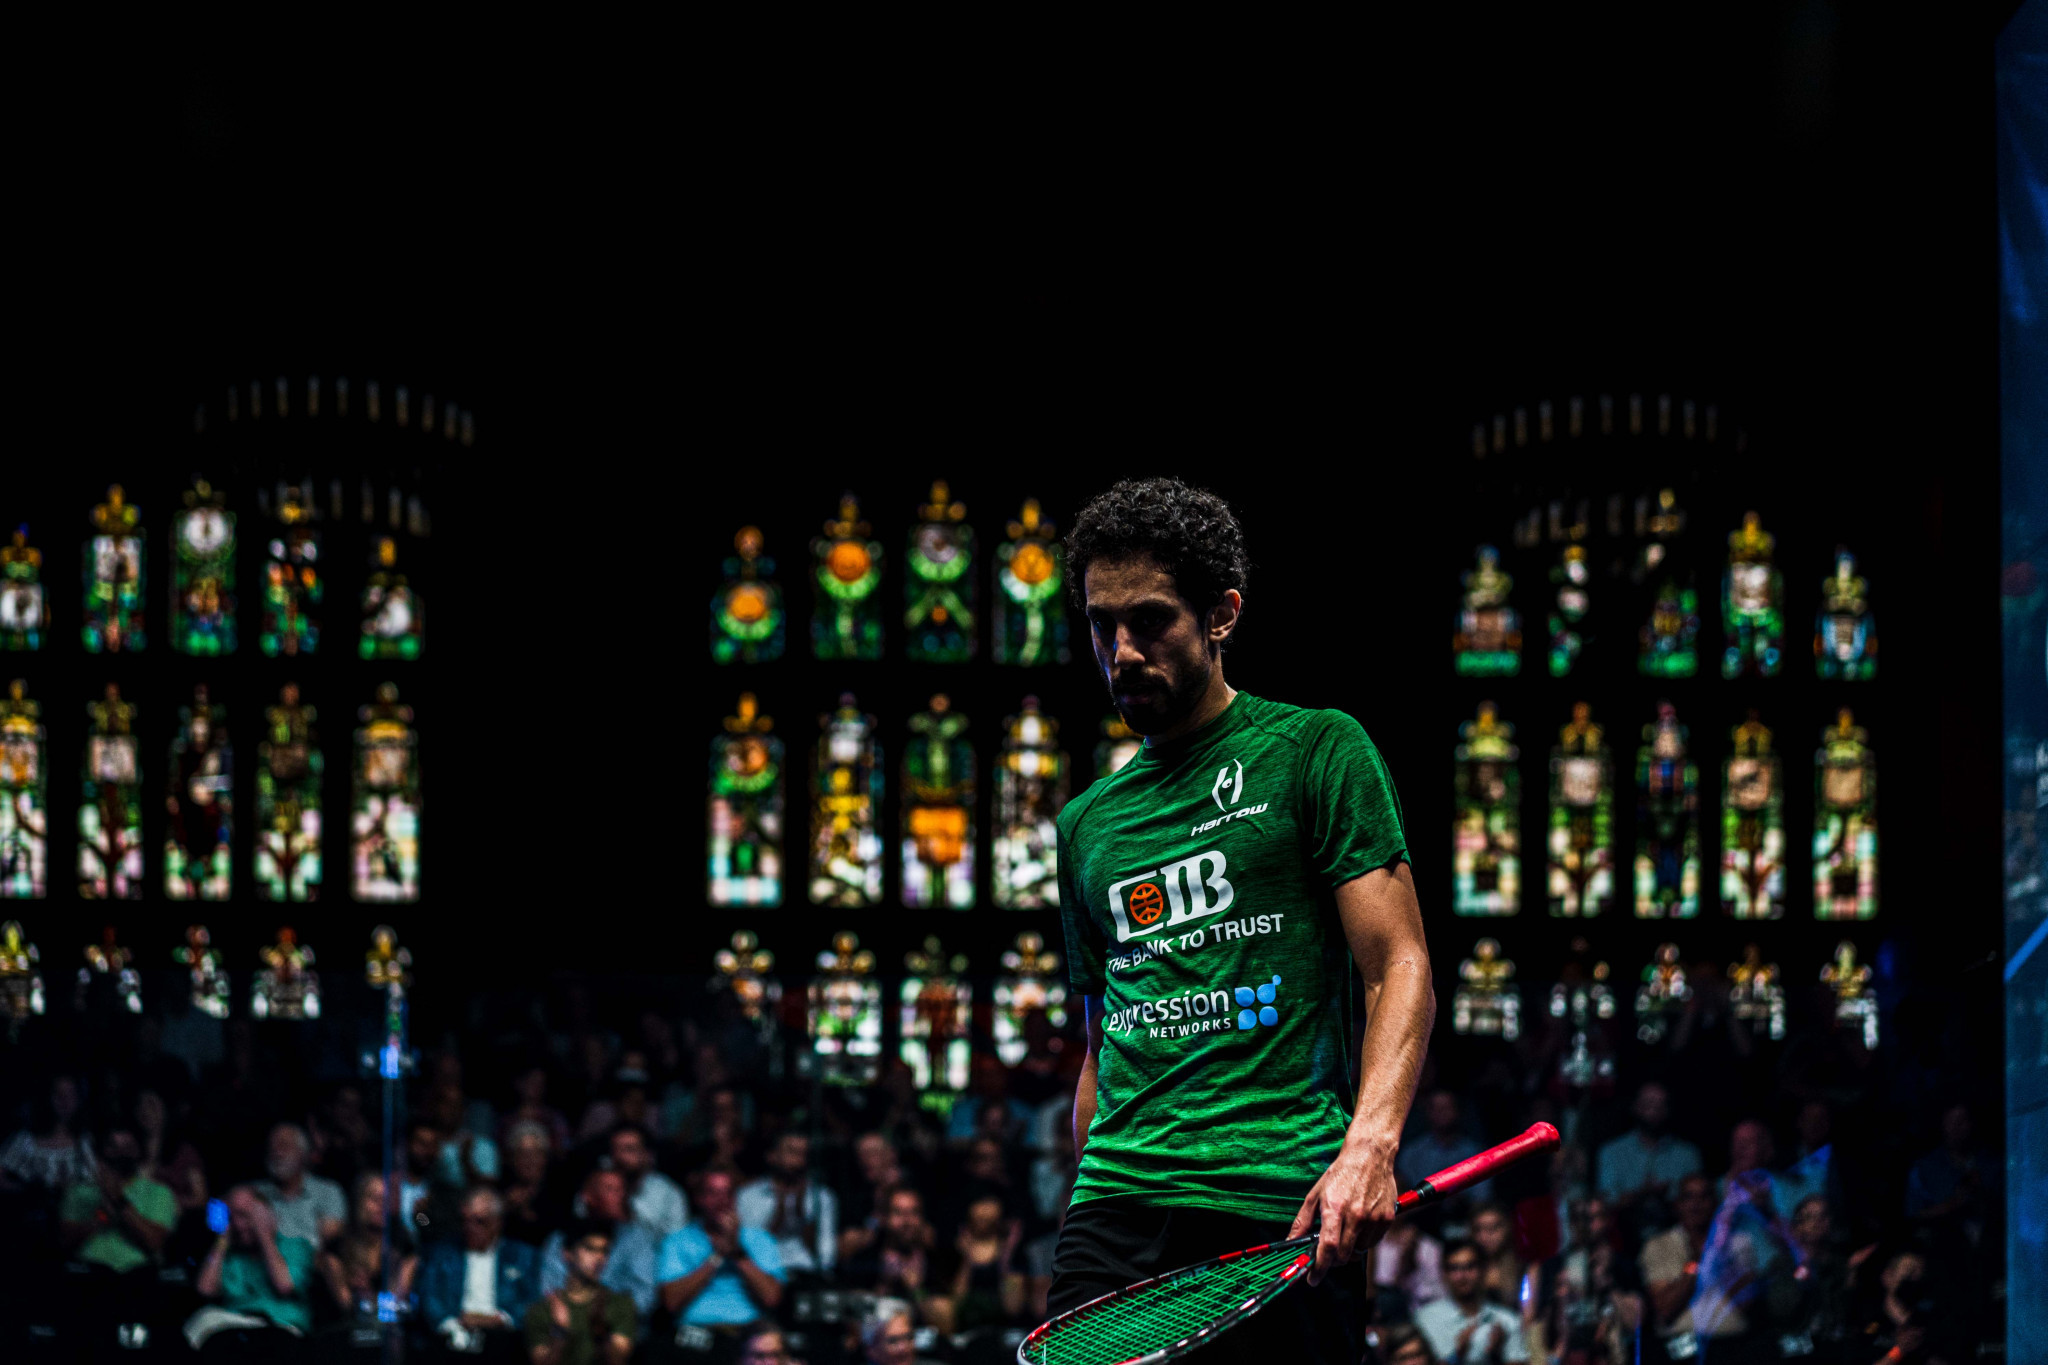 Reigning men's world champion Tarek Momen booked his place in the last four ©PSA